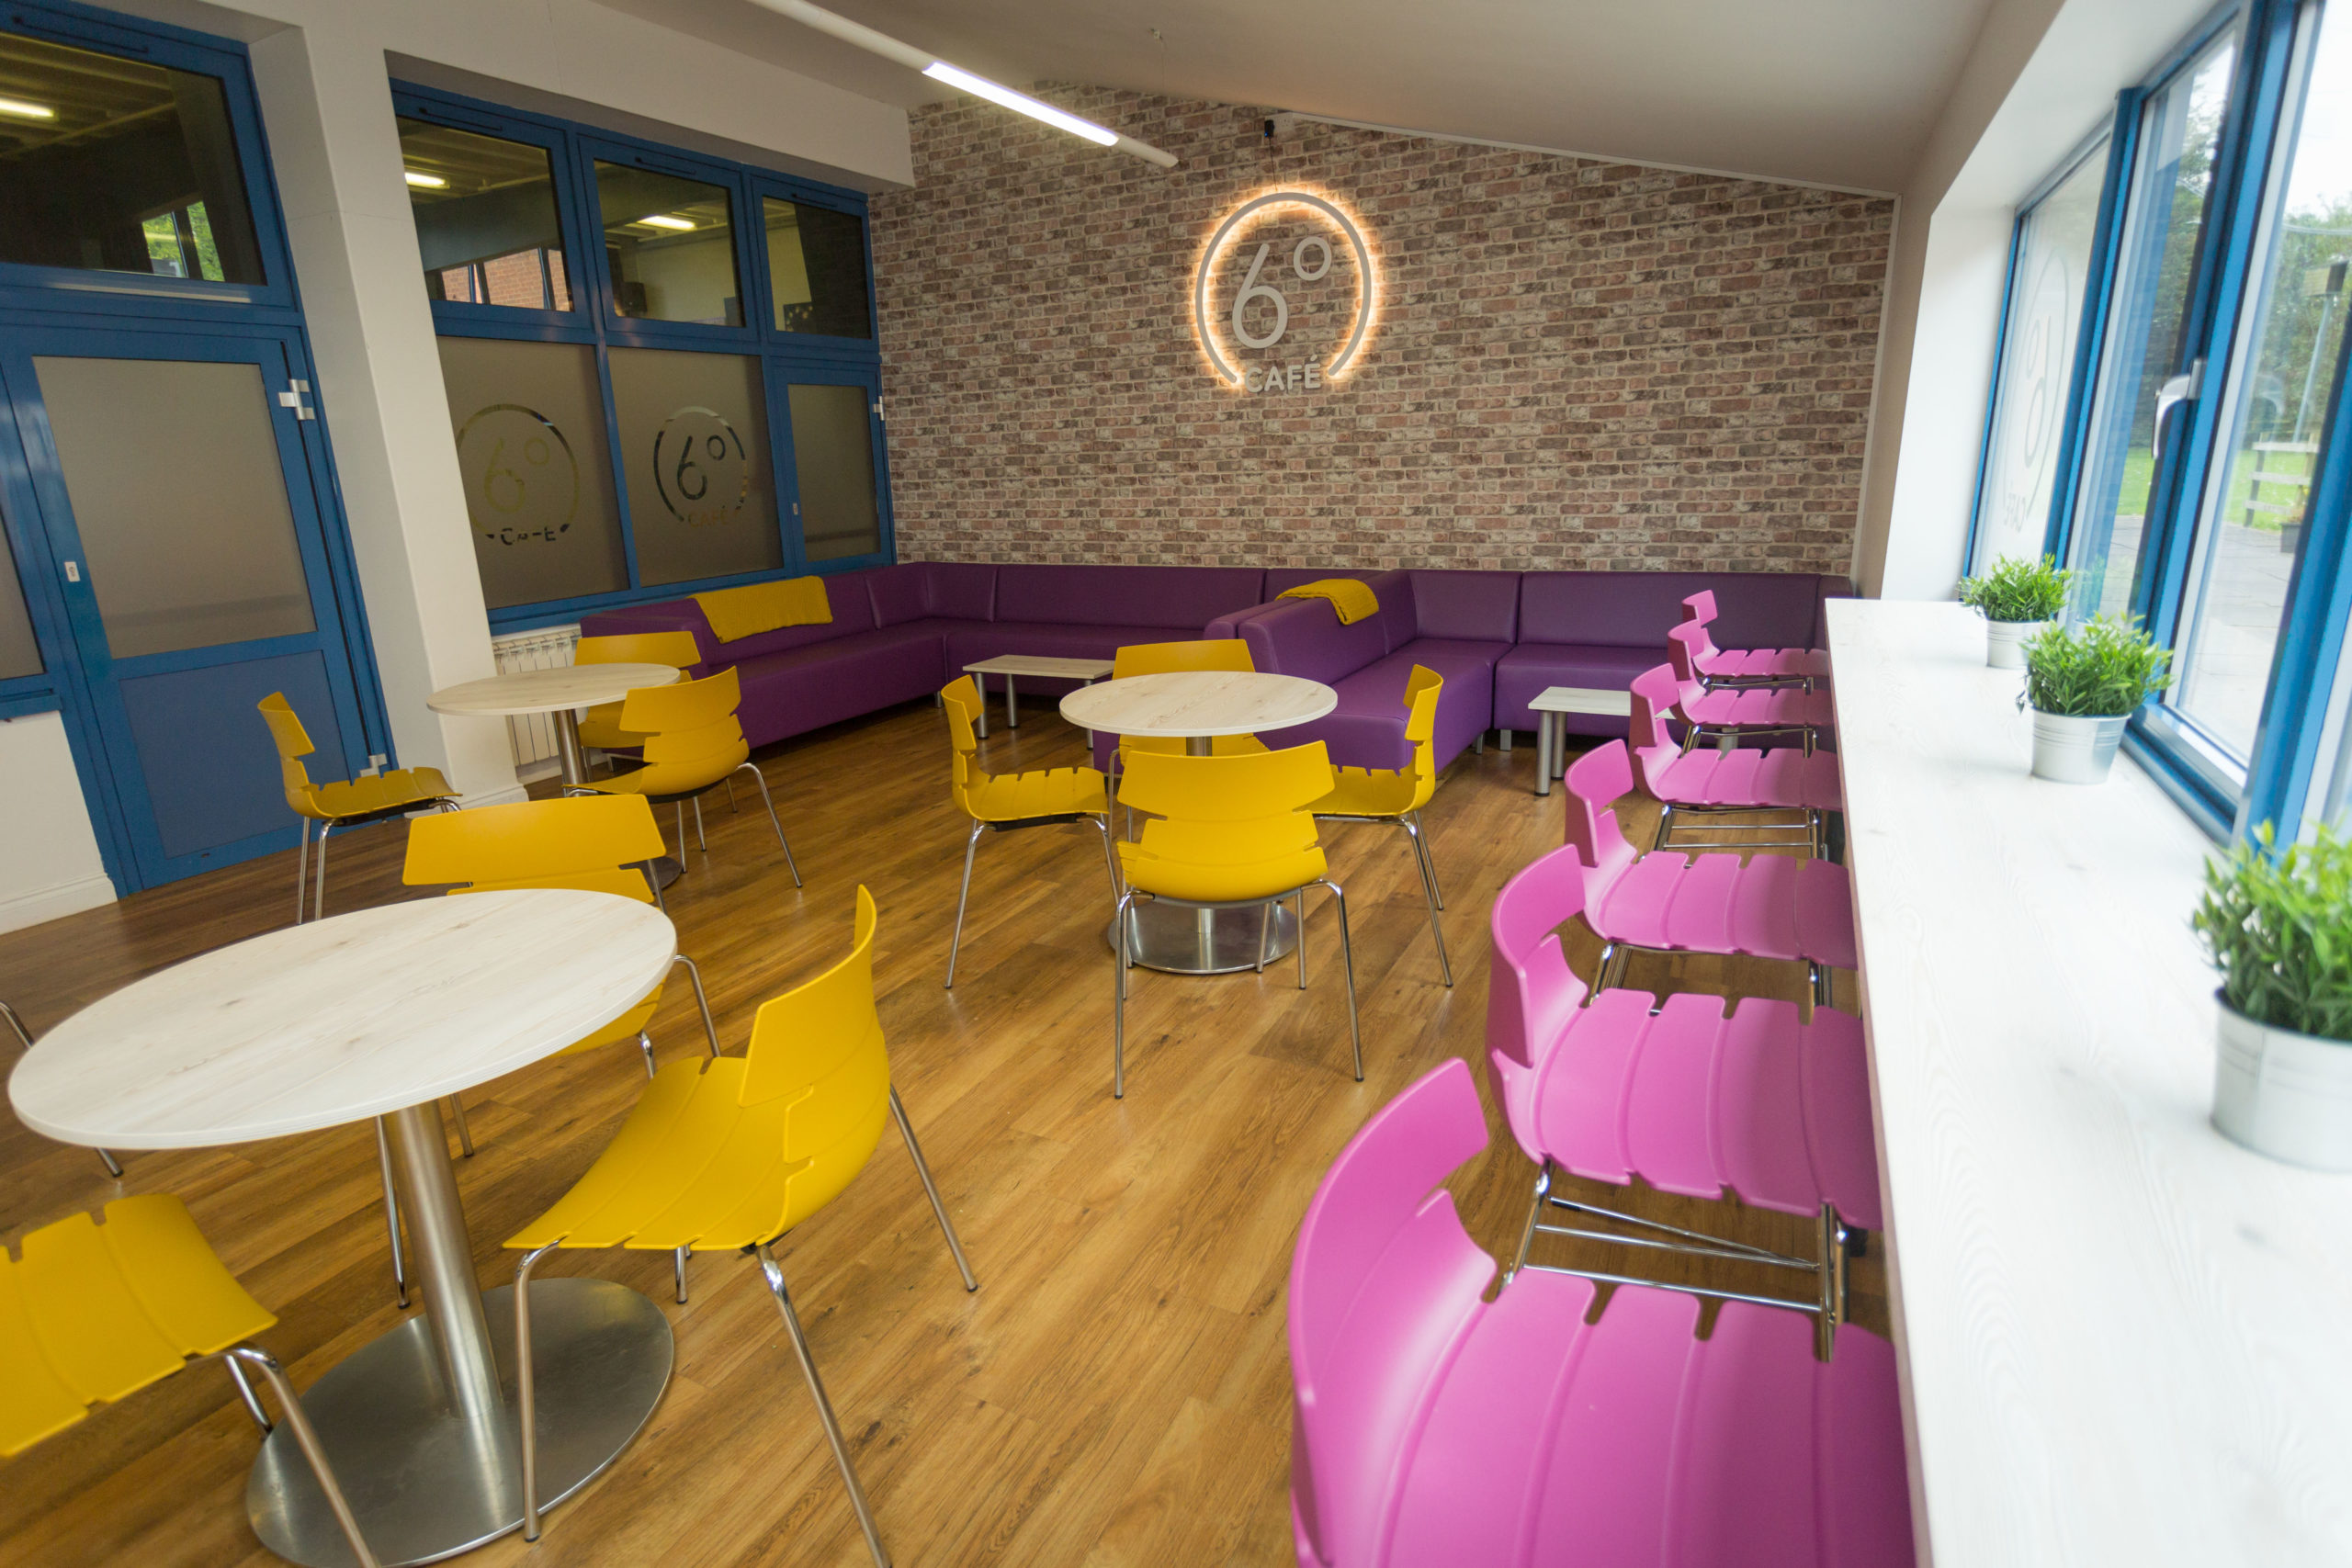 The Bewdley School Sixth Form Cafe